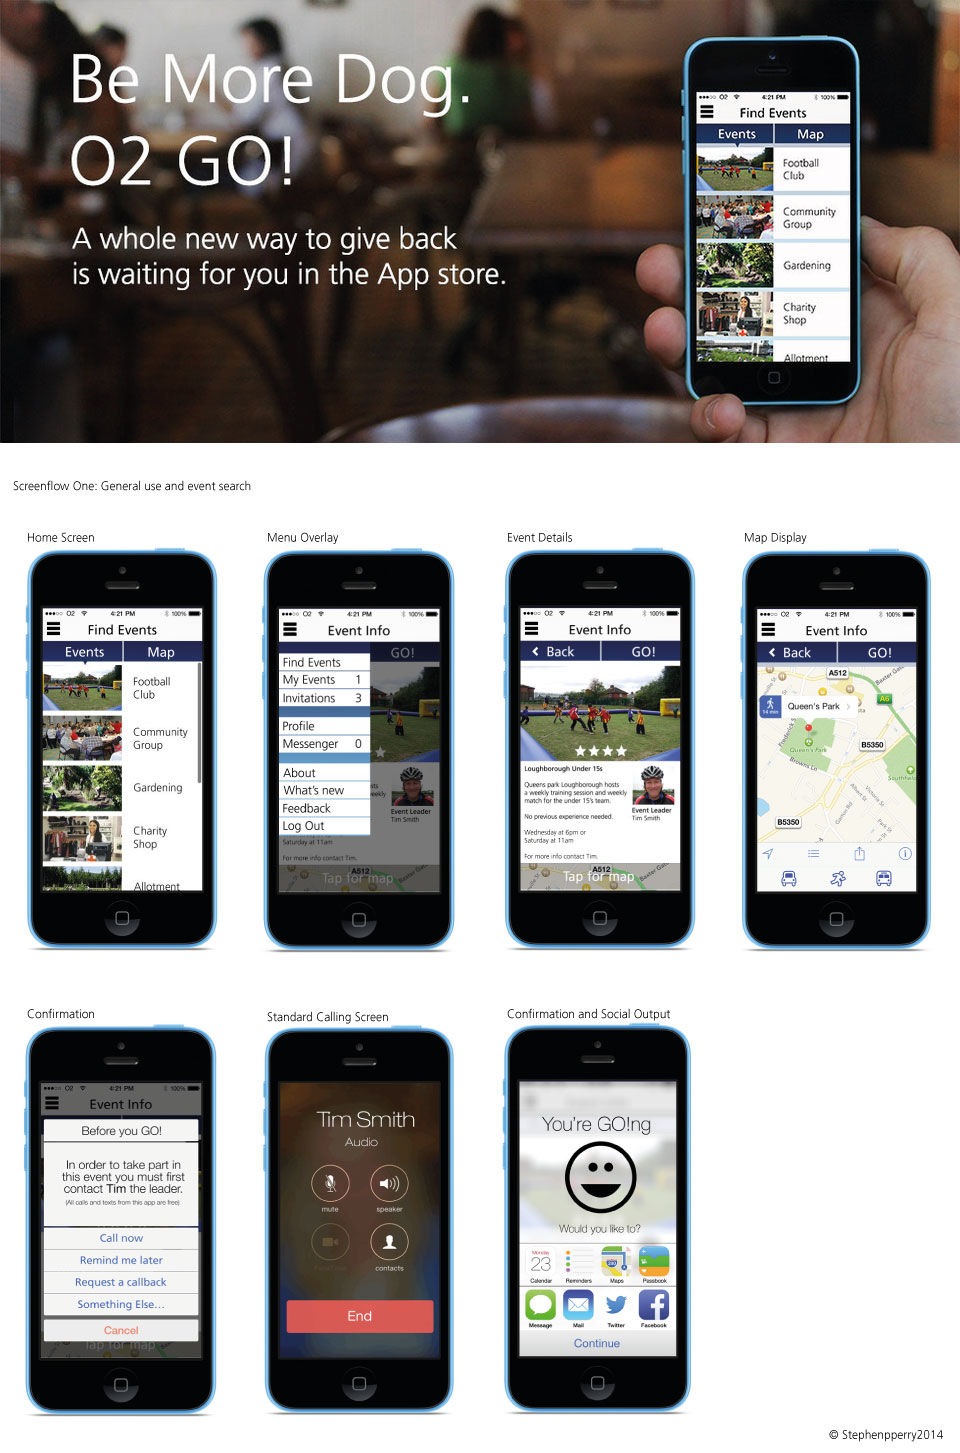 09 o2go final visual app proposal stivenskyrah designer UX